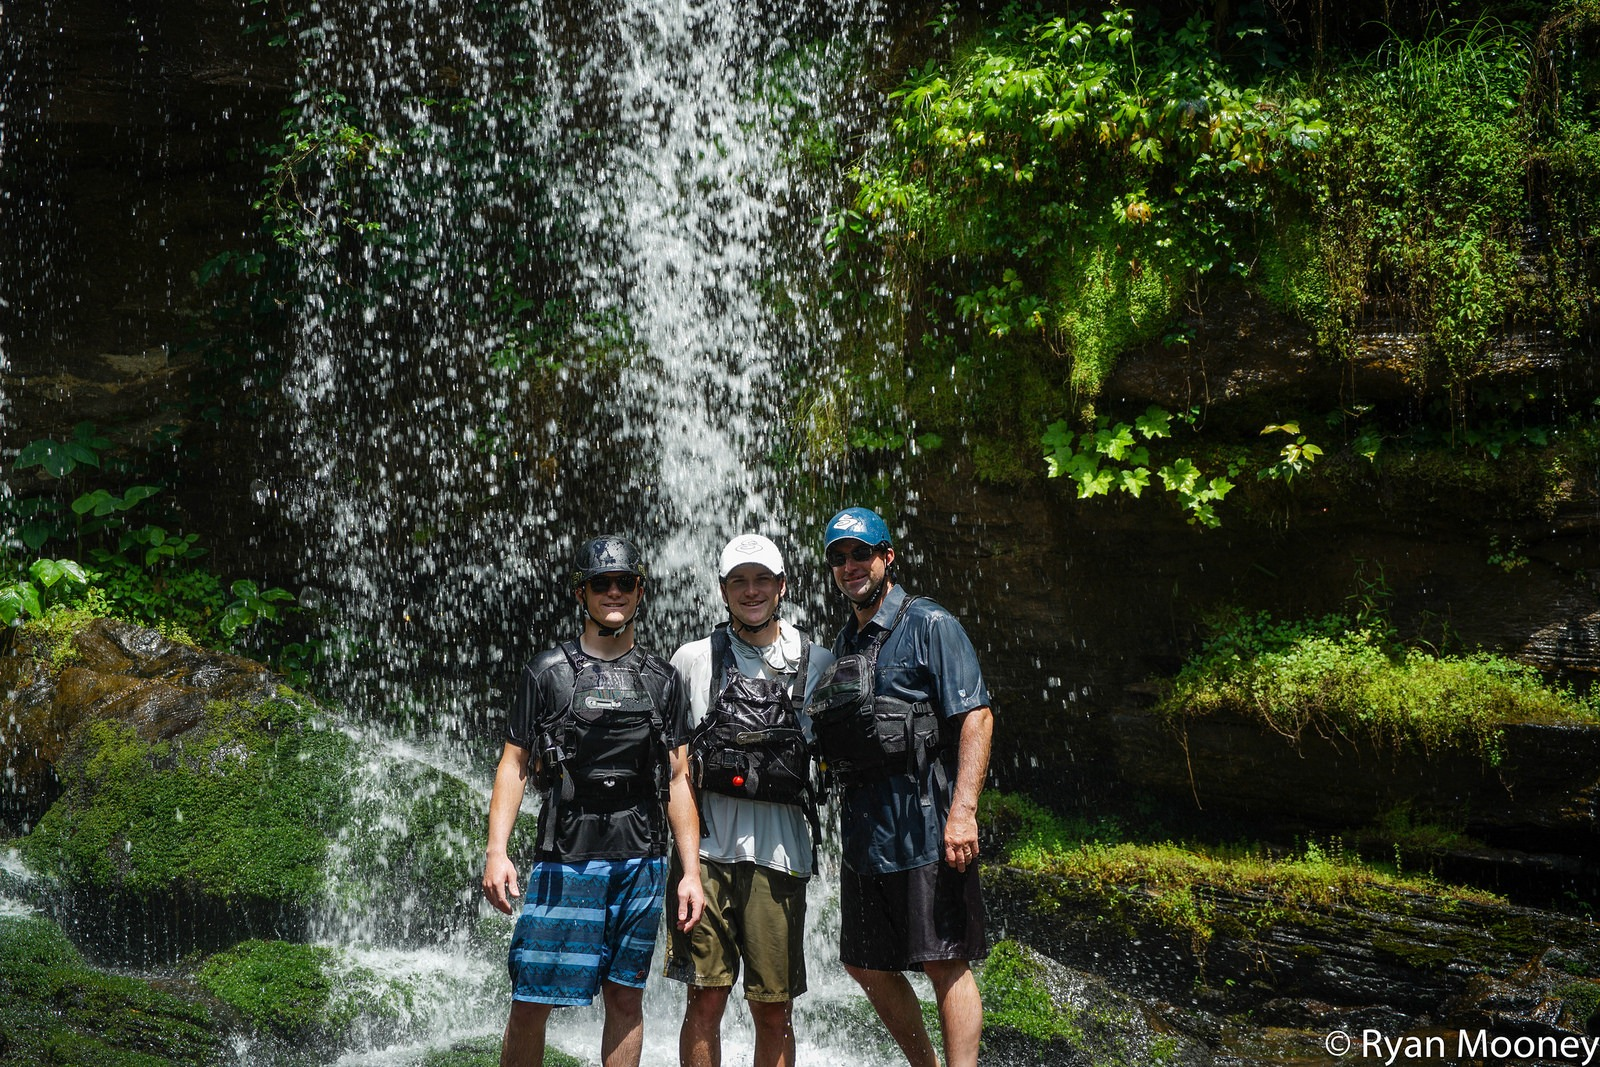 Three members of the Crap Apple team under a waterfall.